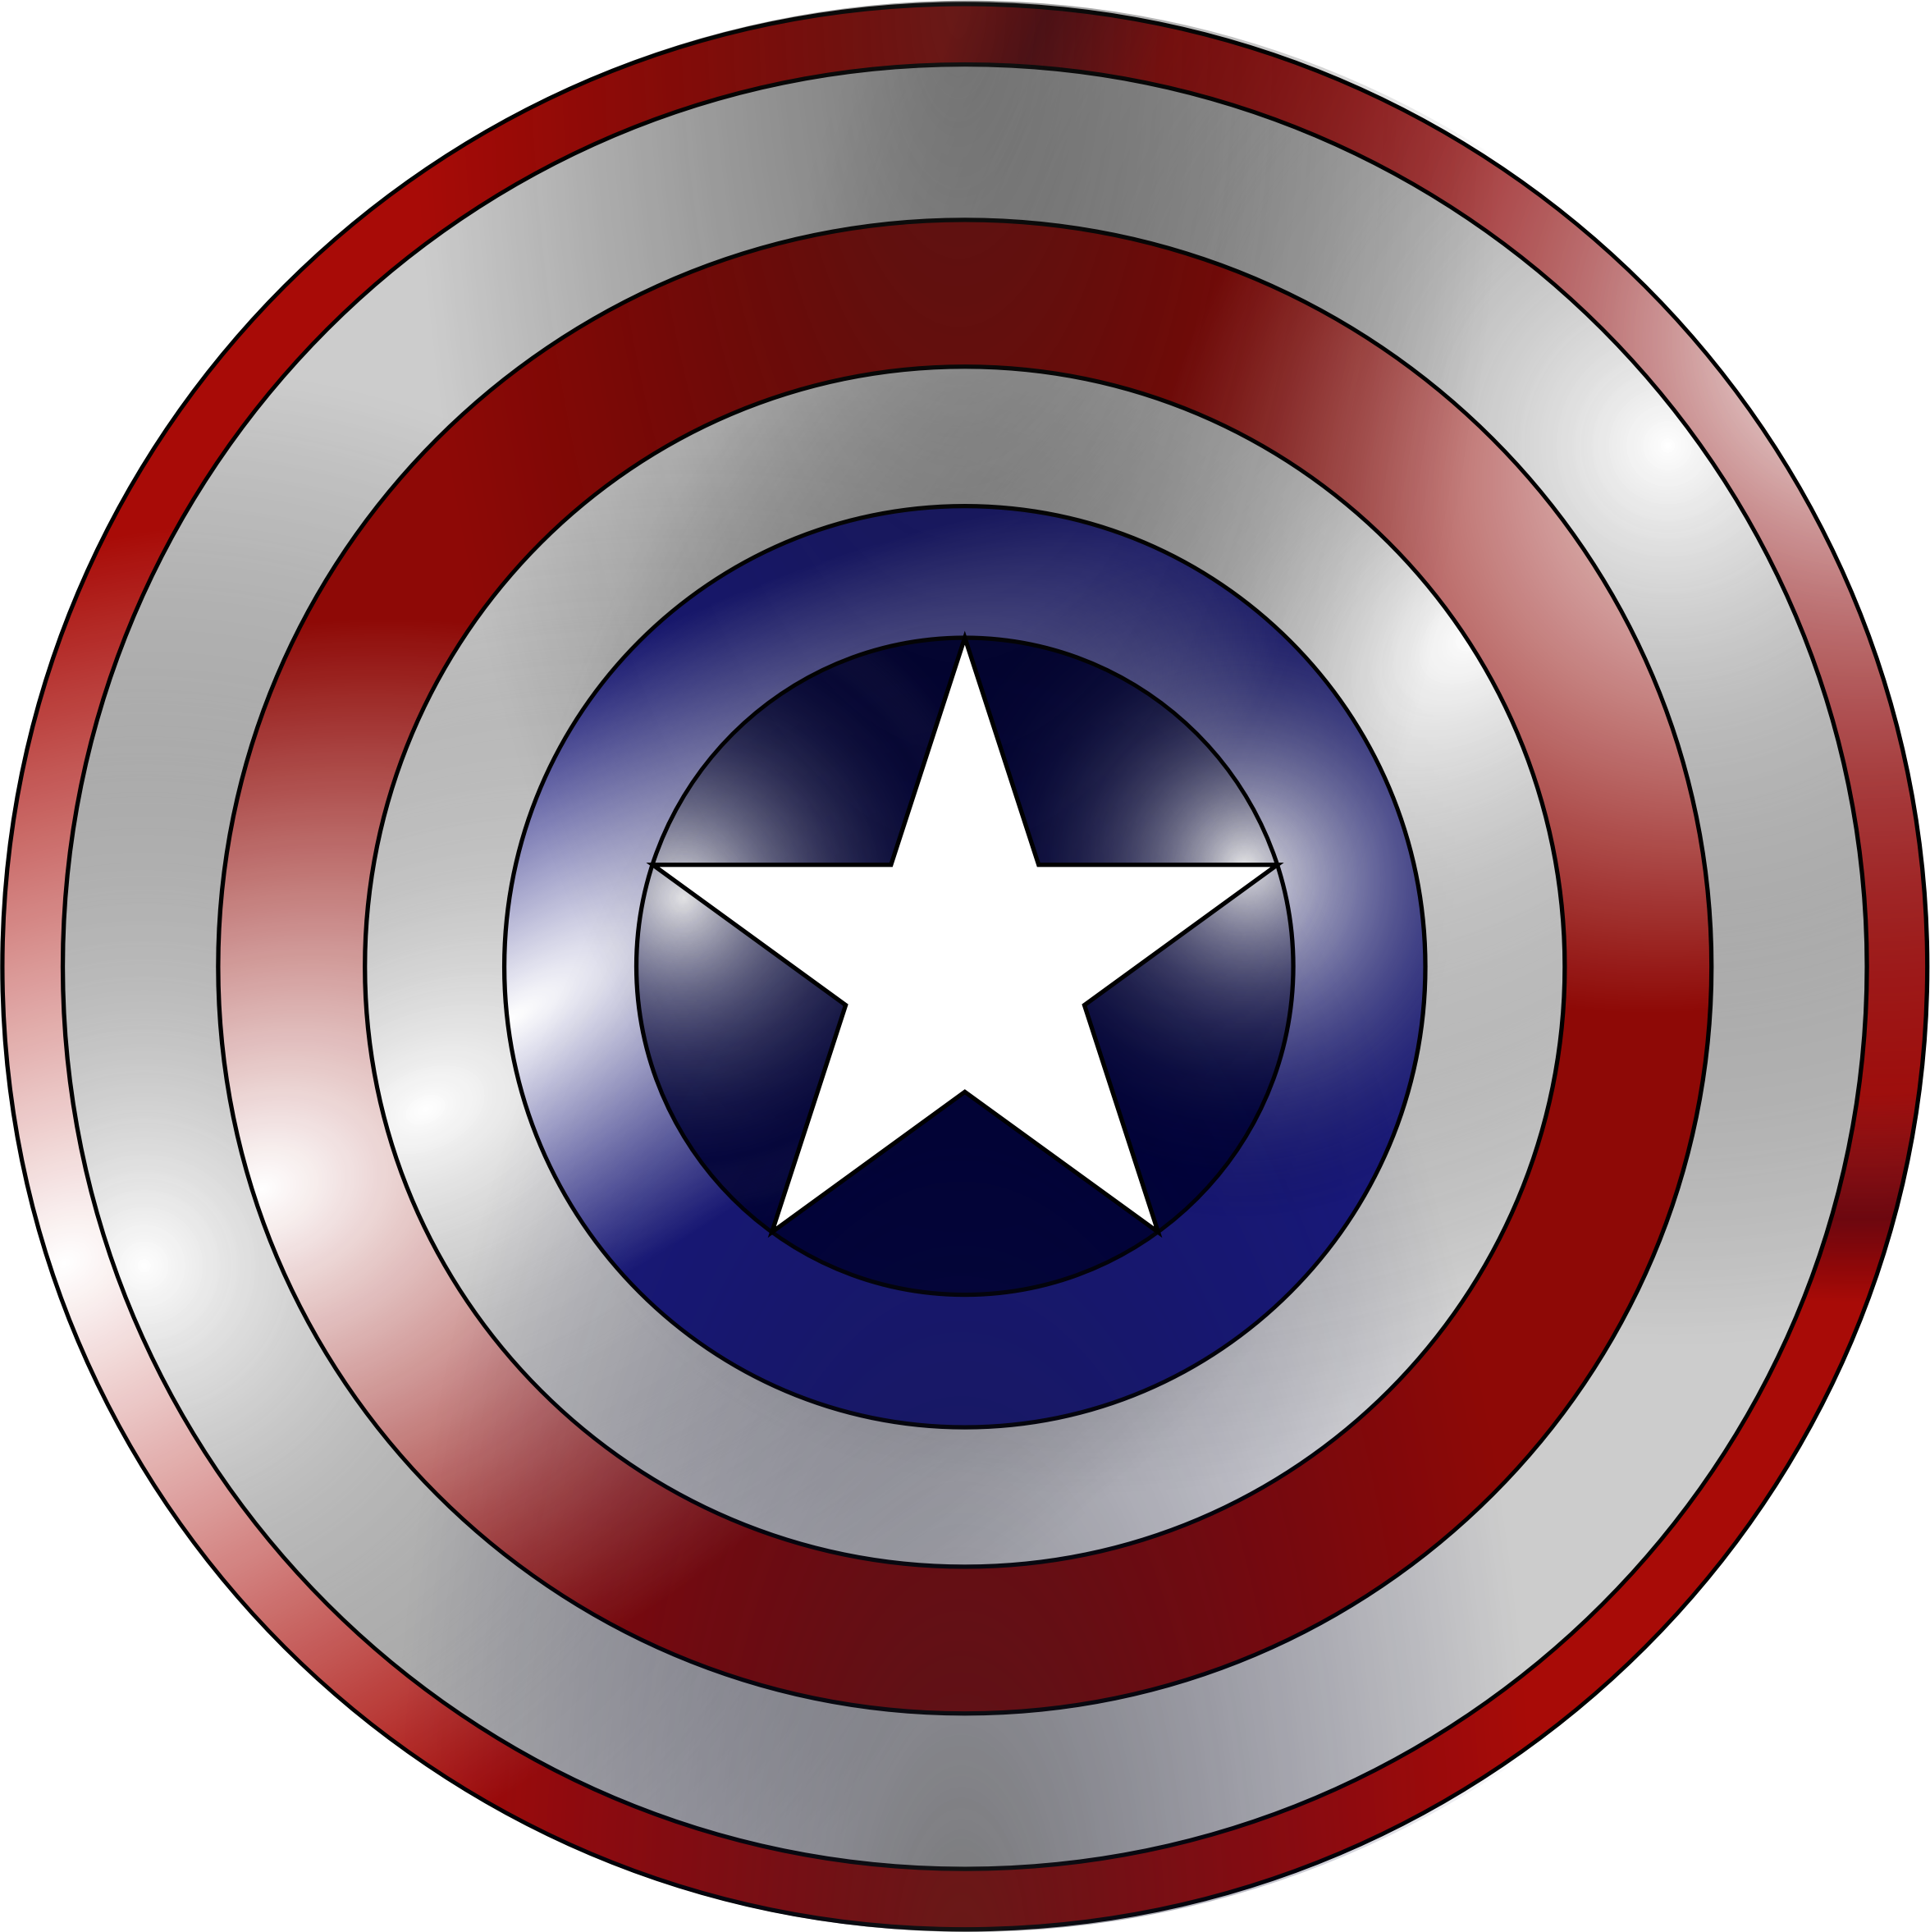 Kola crown clipart png freeuse download Captain America shield (metal base) by Fred the Oyster | cricut ... png freeuse download